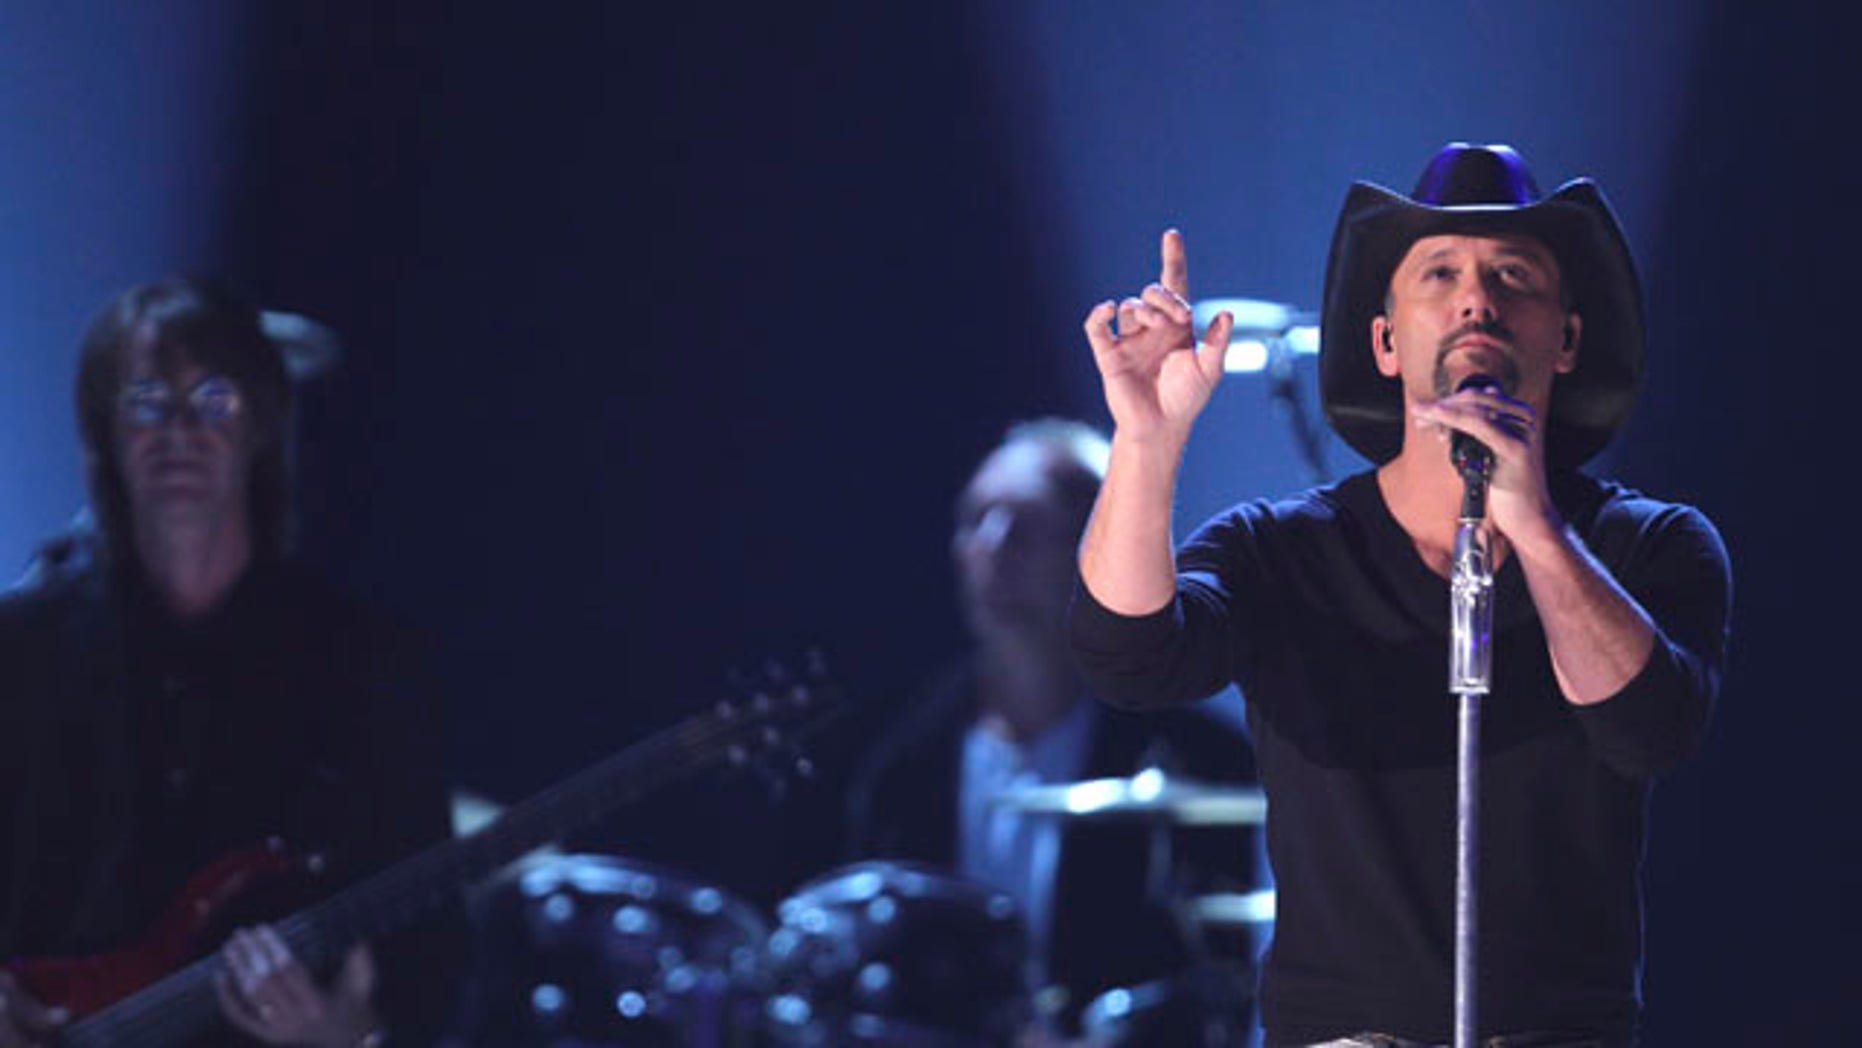 Tim McGraw performs at the 45th annual Academy of Country Music Awards in Las Vegas, Nevada April 18, 2010.     REUTERS/Robert Galbraith (UNITED STATES - Tags: ENTERTAINMENT)